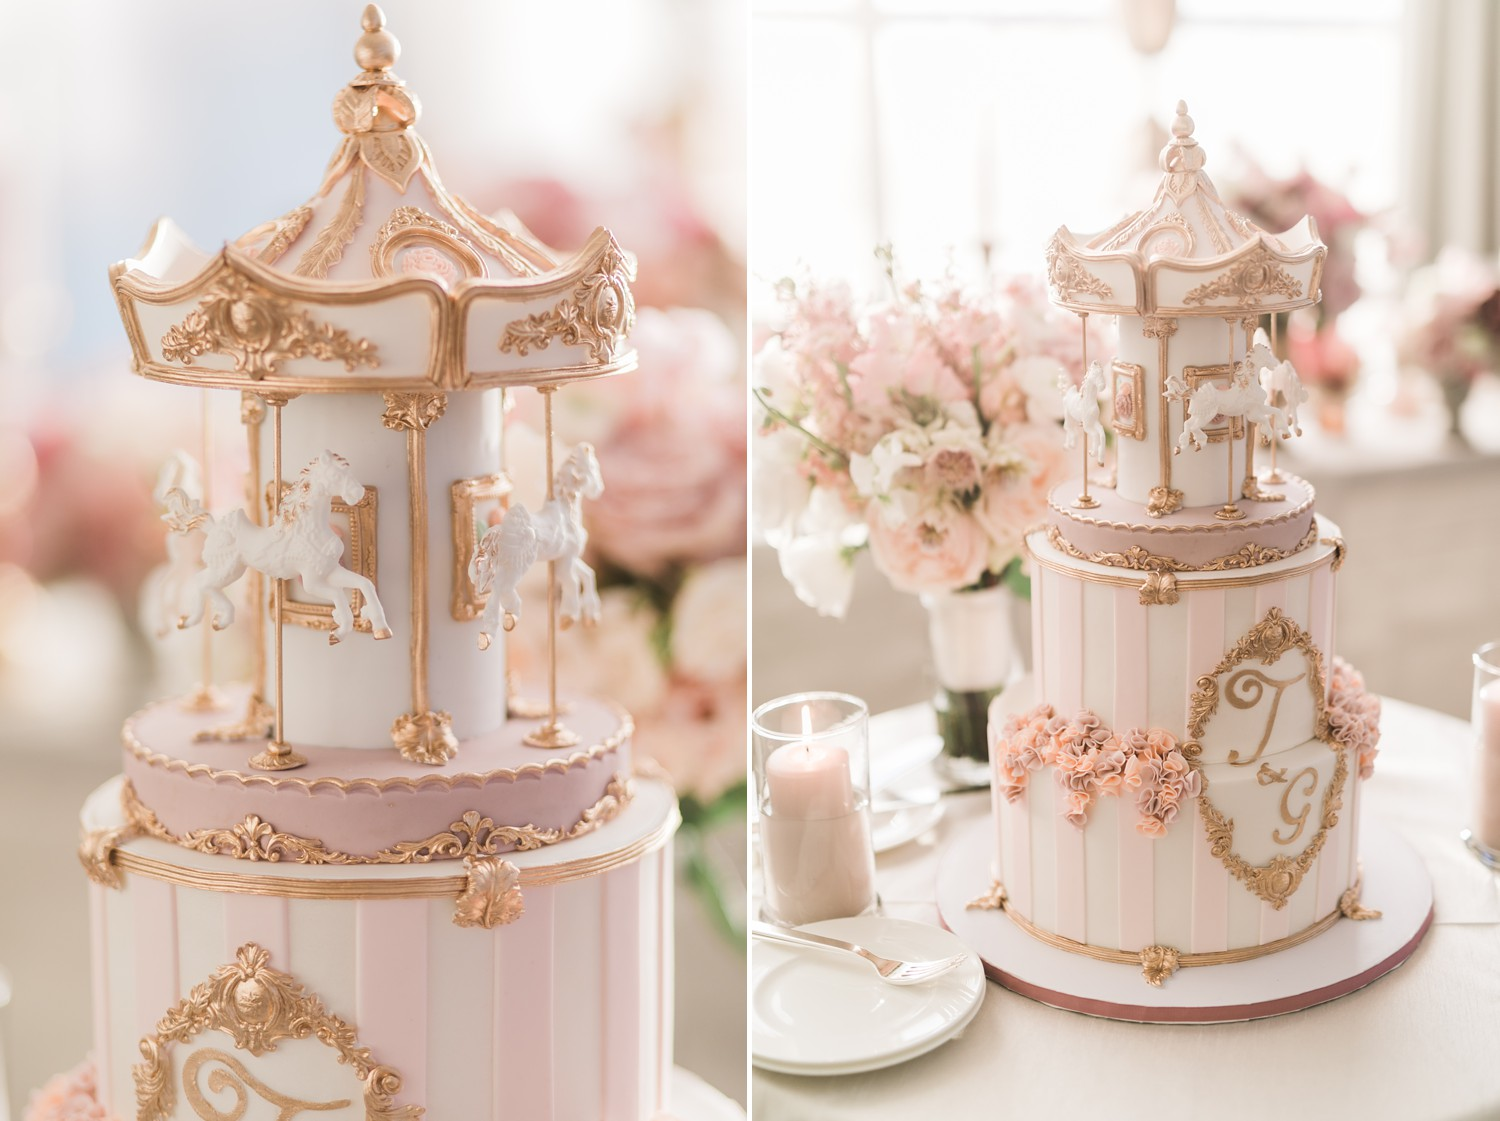 Pink and White Carousel wedding cake Reception Decor Vinci Room Luxury Yorkville Toronto Four Season Hotel Wedding Photos with Chinese Bride and Groom